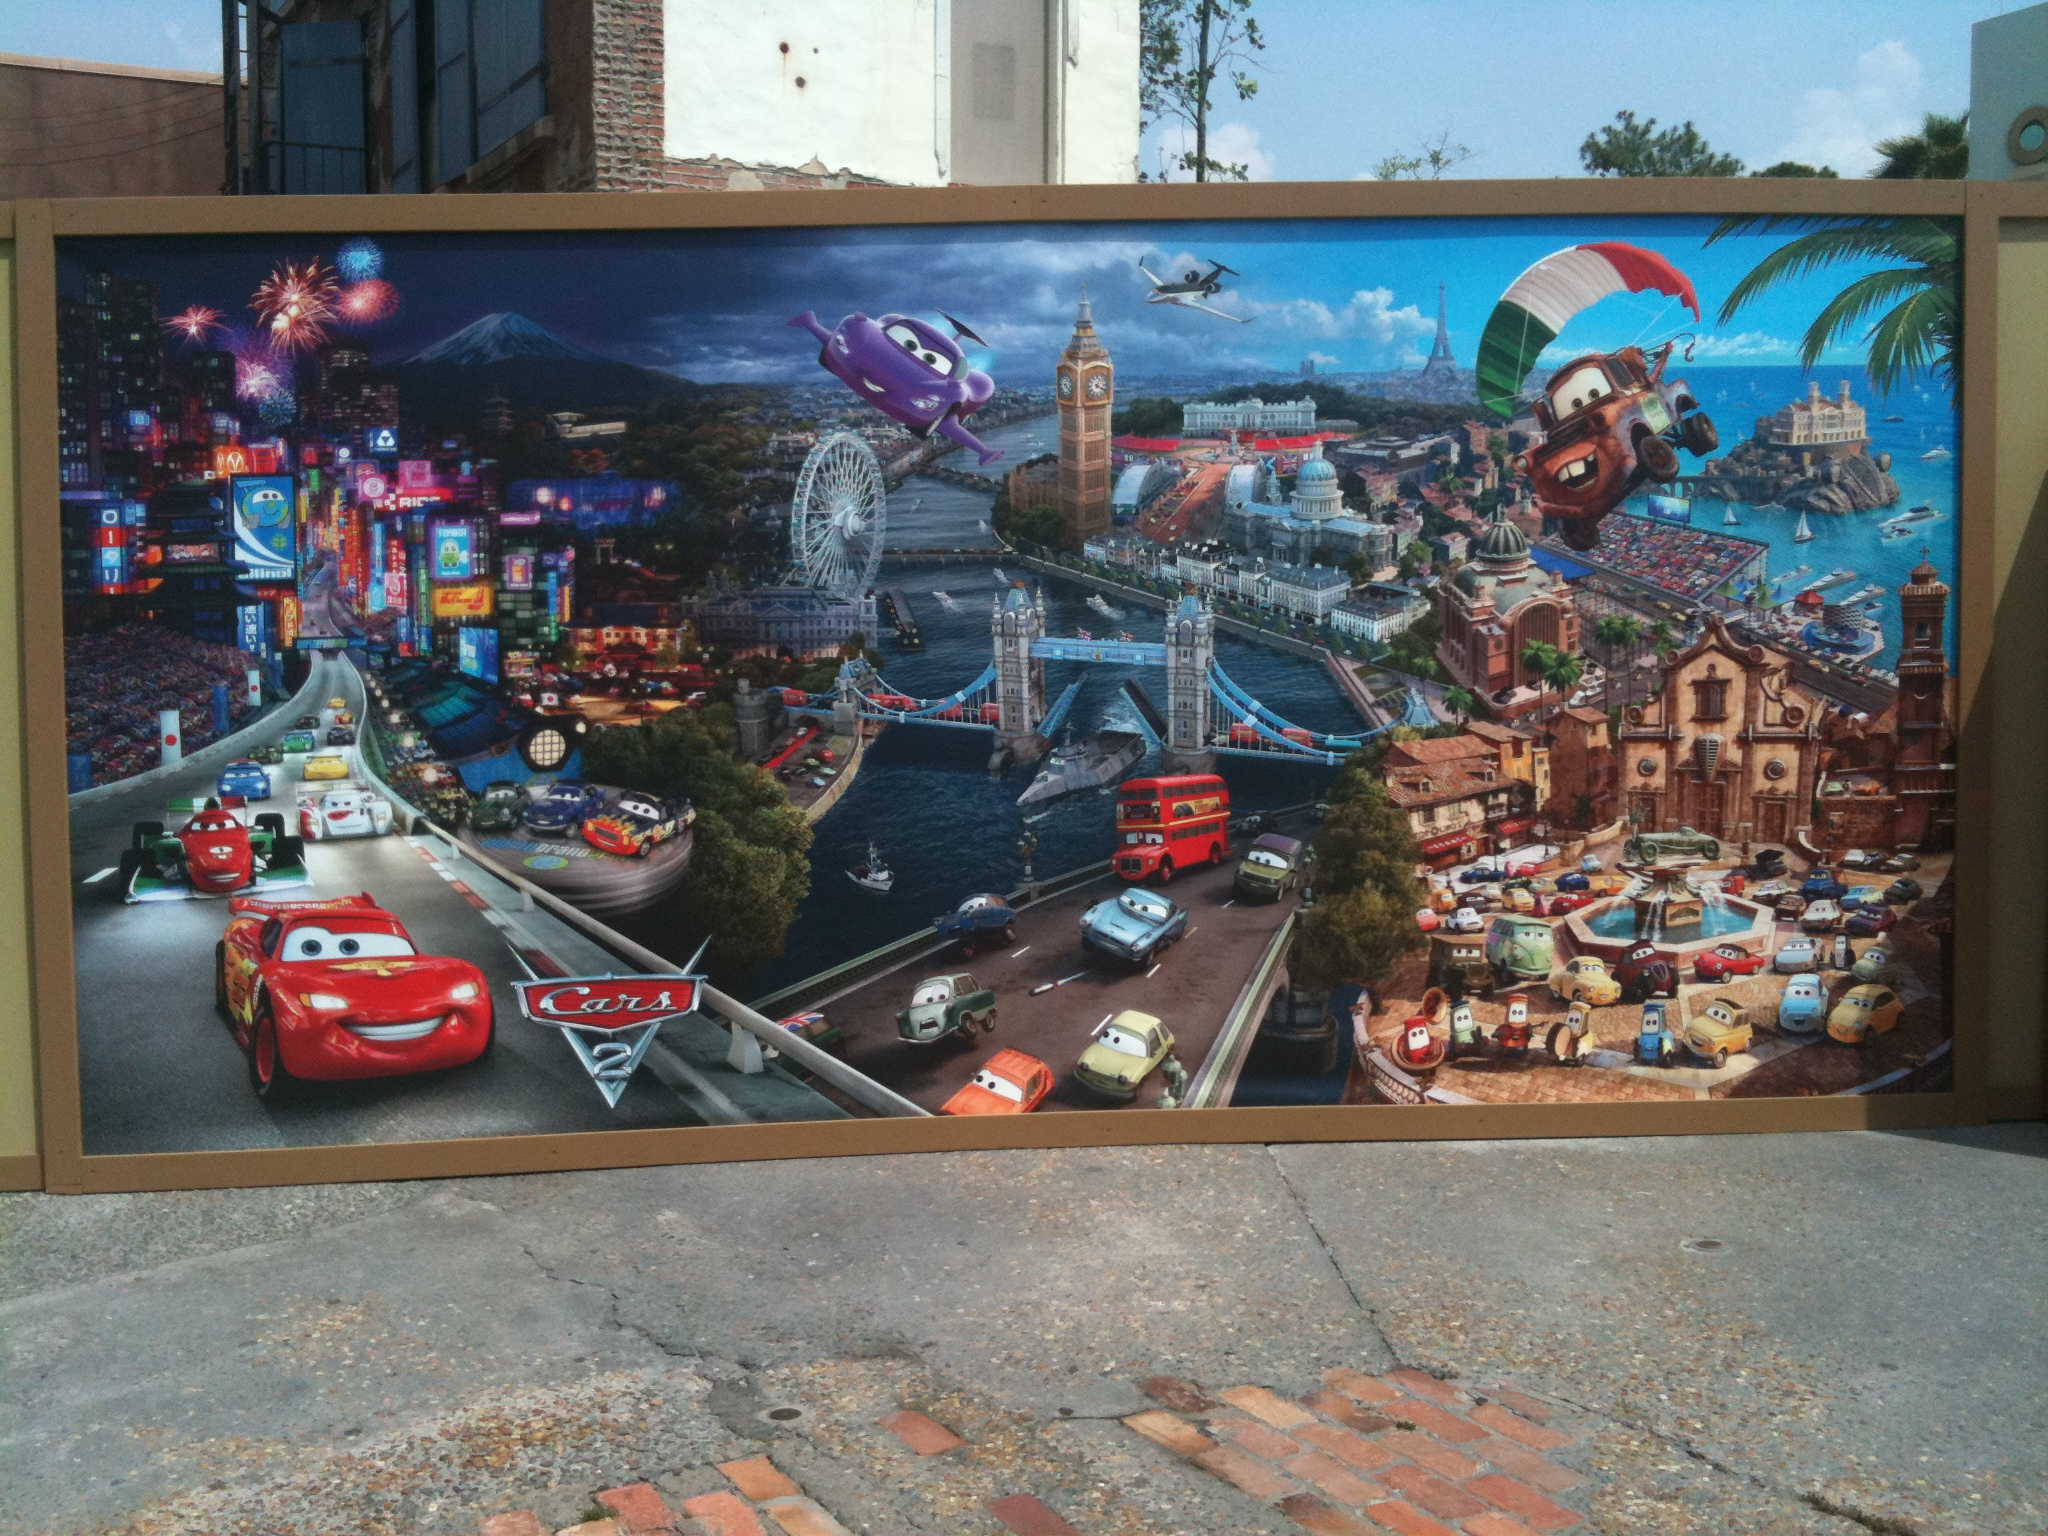 Wordless Wednesday Pixar Cars 2 Mural At Walt Disney World